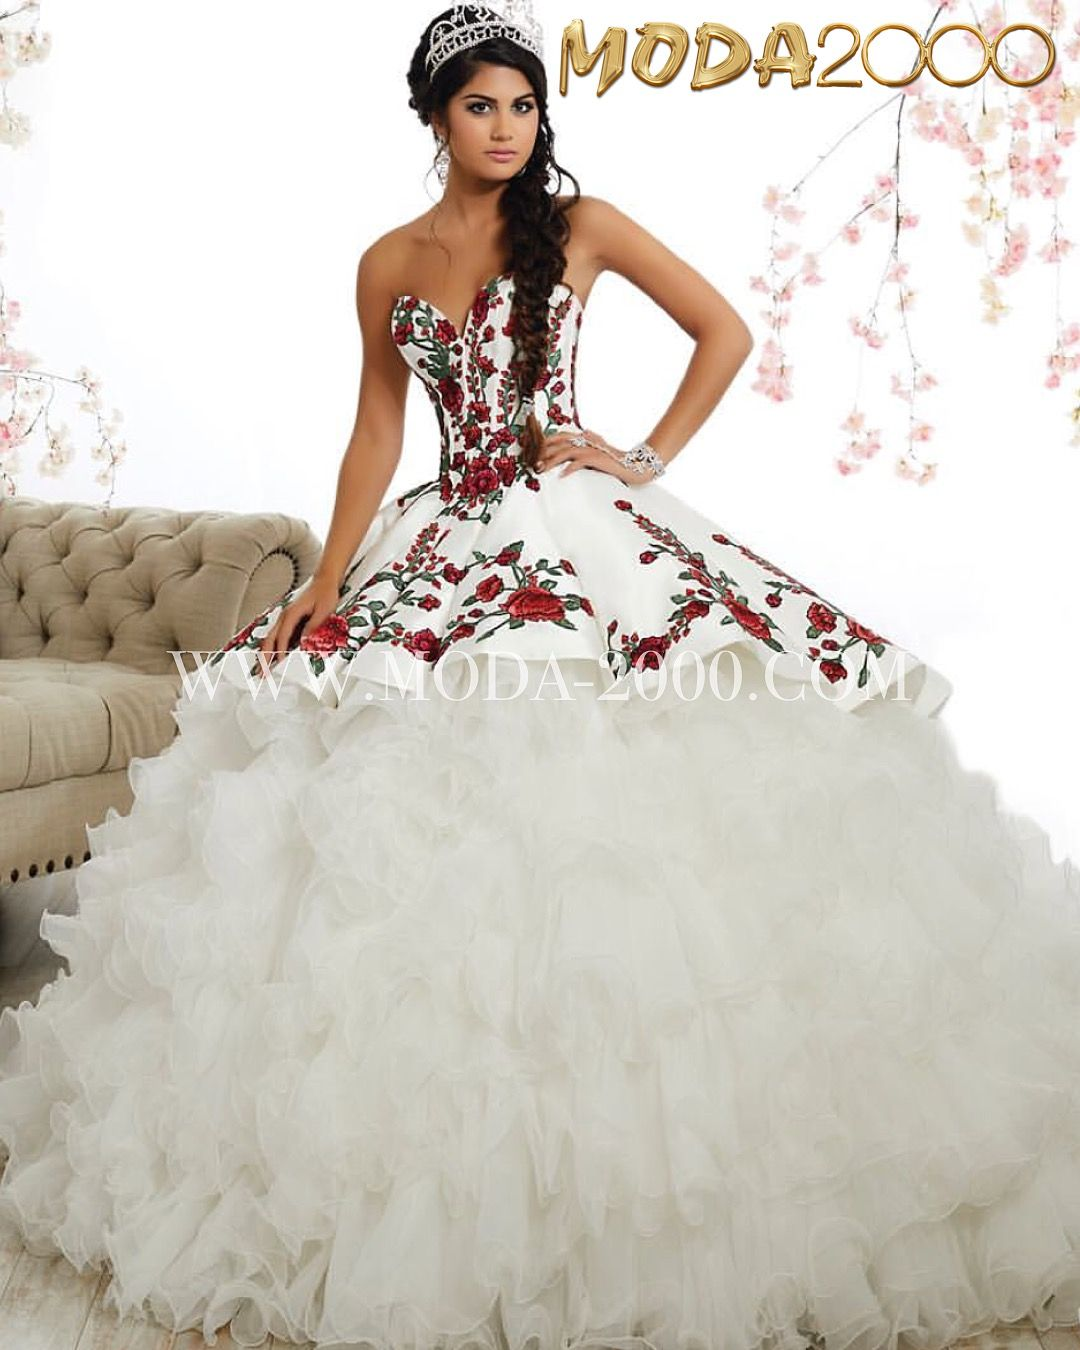 cd9381a721 2-1 Charro white red quinceanera dress